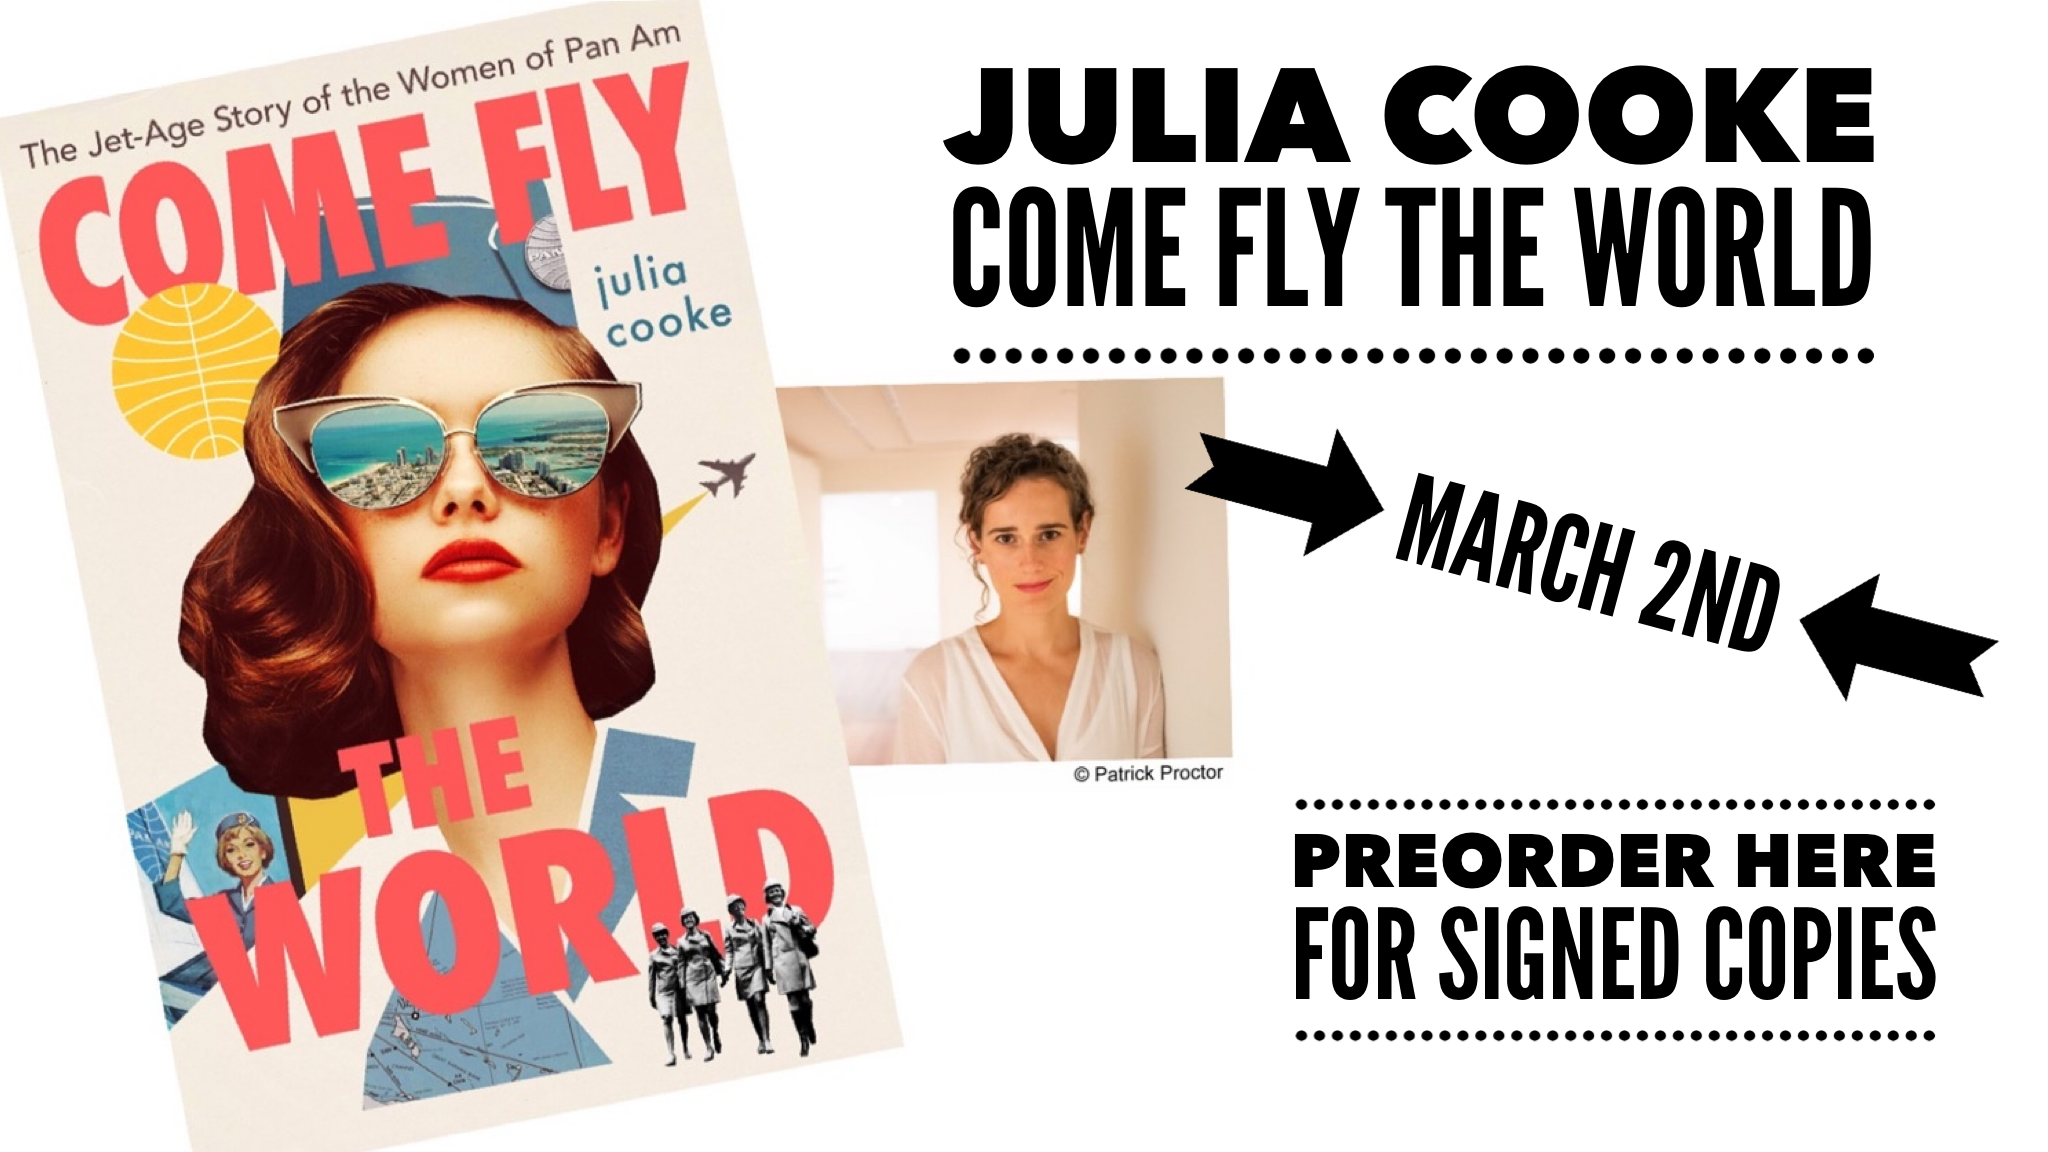 Julia Cooke Come Fly the World publishing March 2nd Preorder here for signed copies